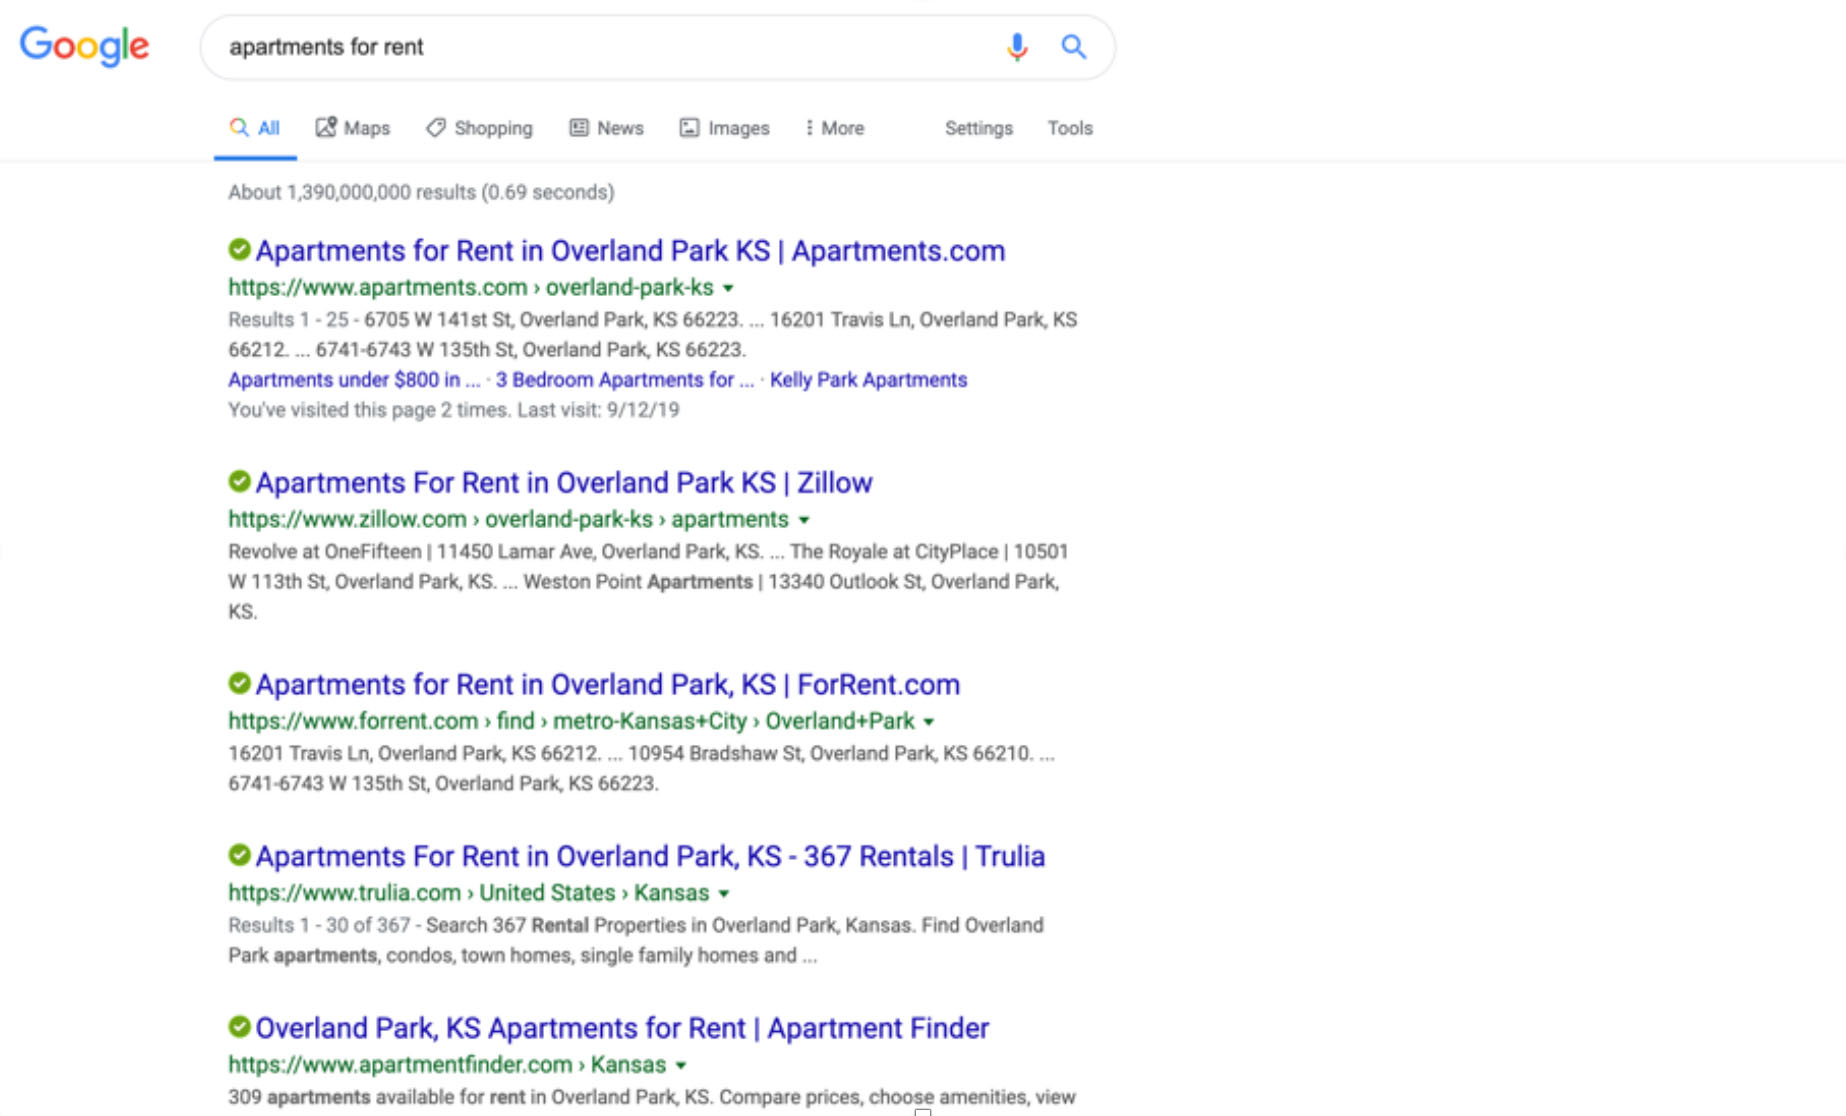 Google search results for property listings